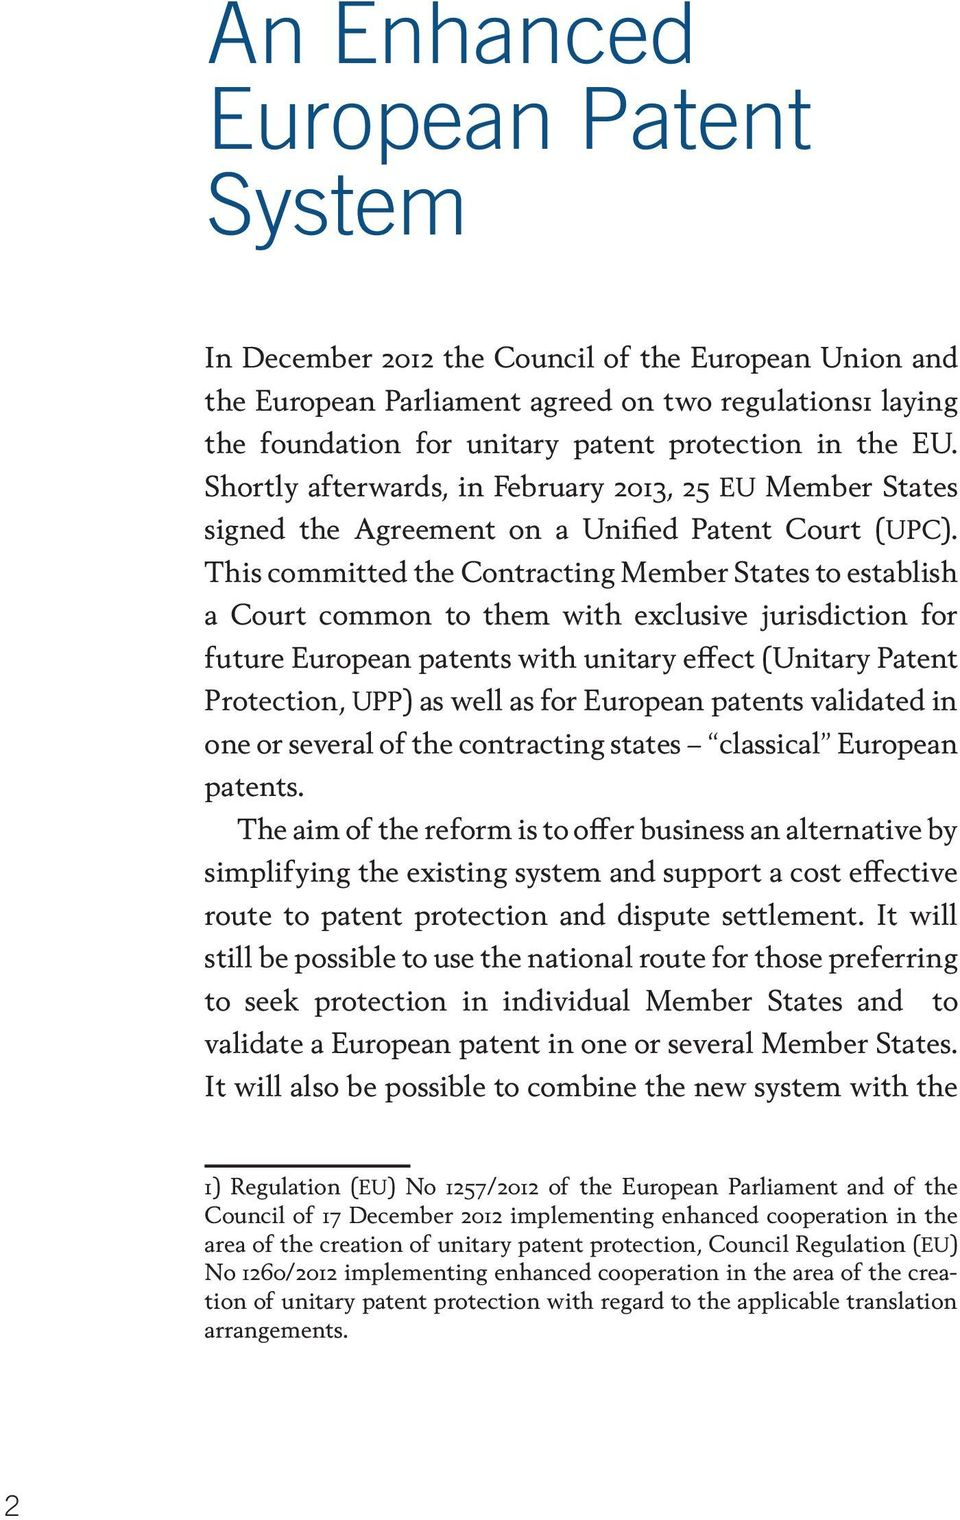 This committed the Contracting Member States to establish a Court common to them with exclusive jurisdiction for future European patents with unitary effect (Unitary Patent Protection, UPP) as well